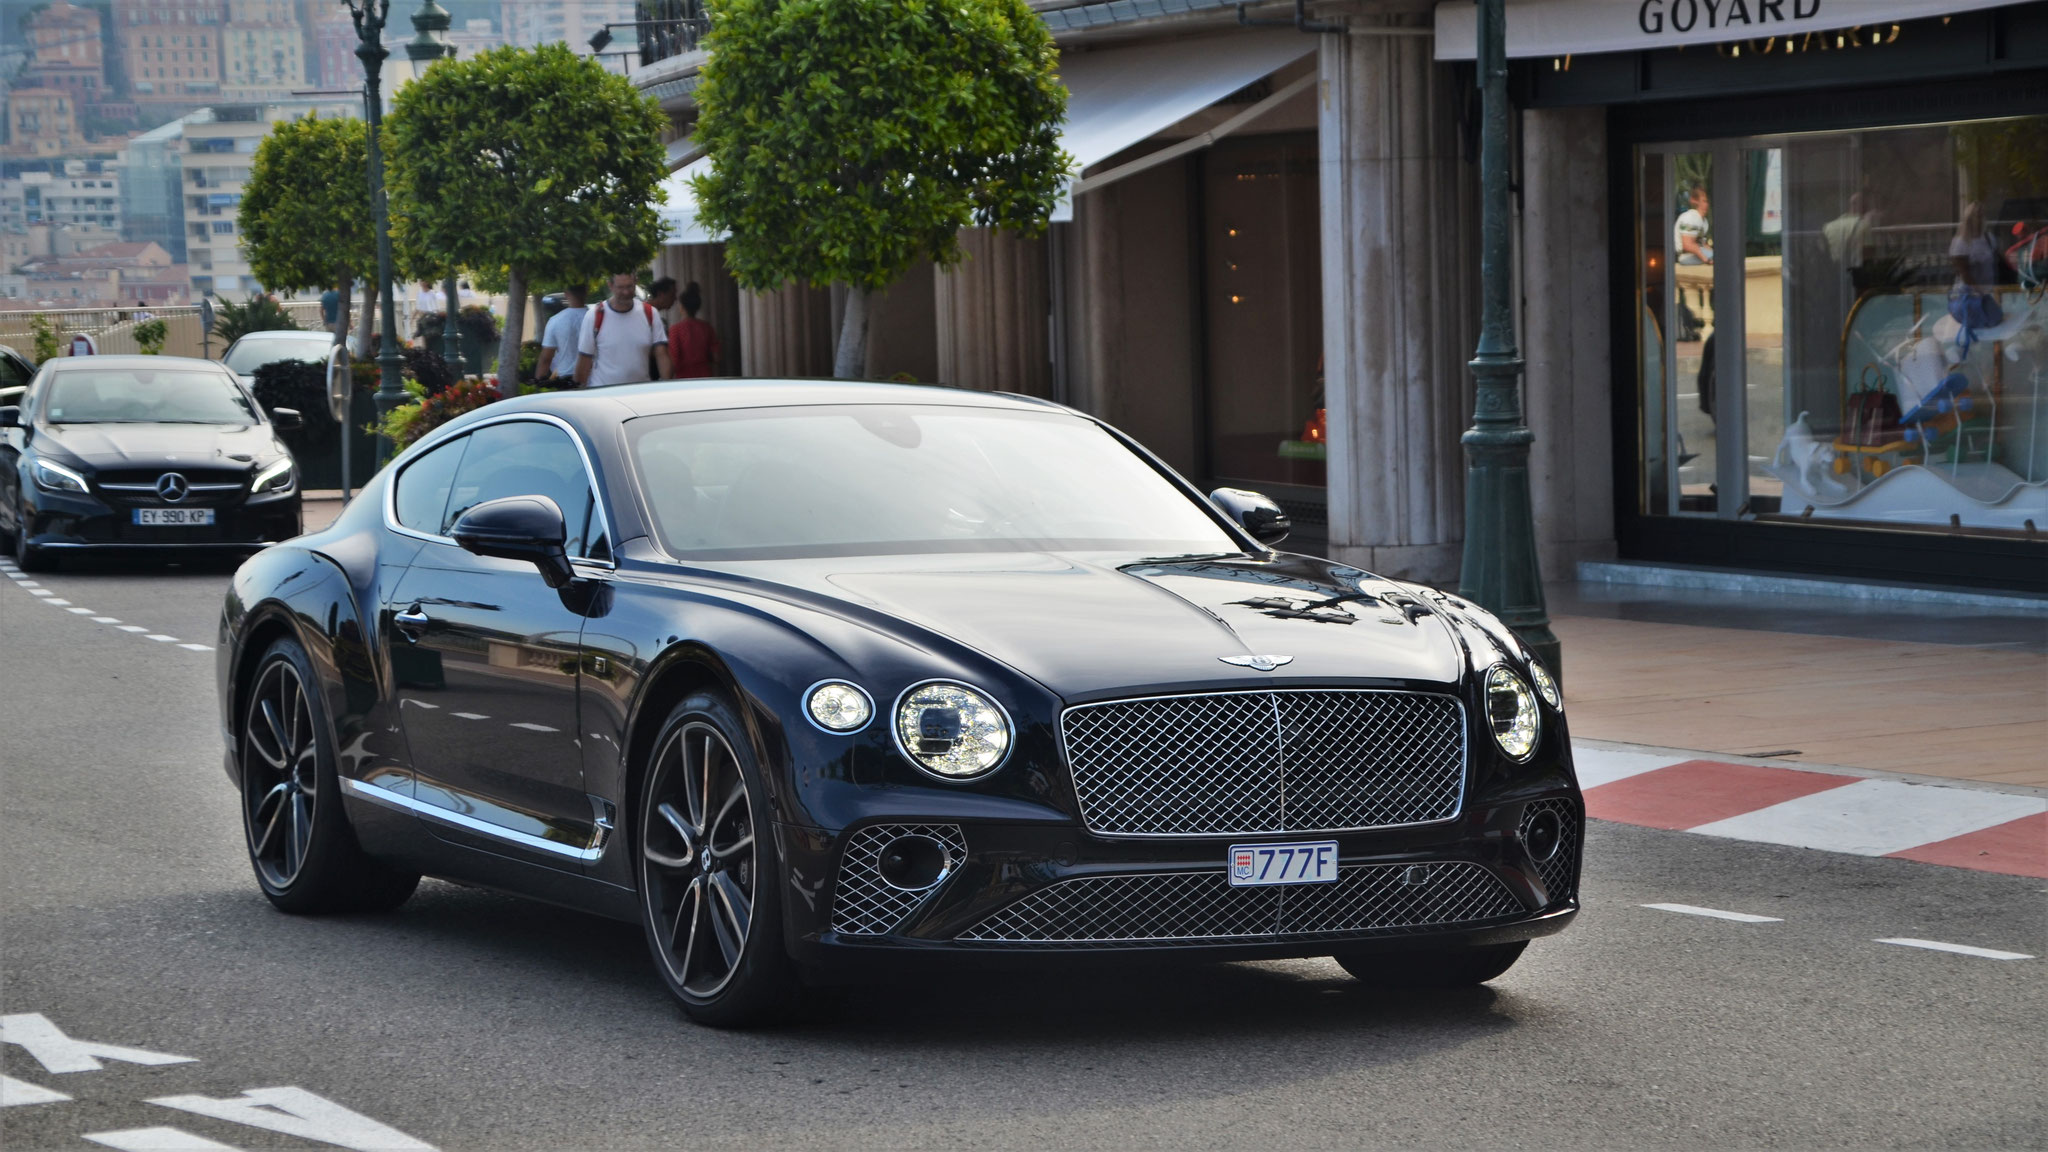 Bentley Continental GT - 777F (MC)